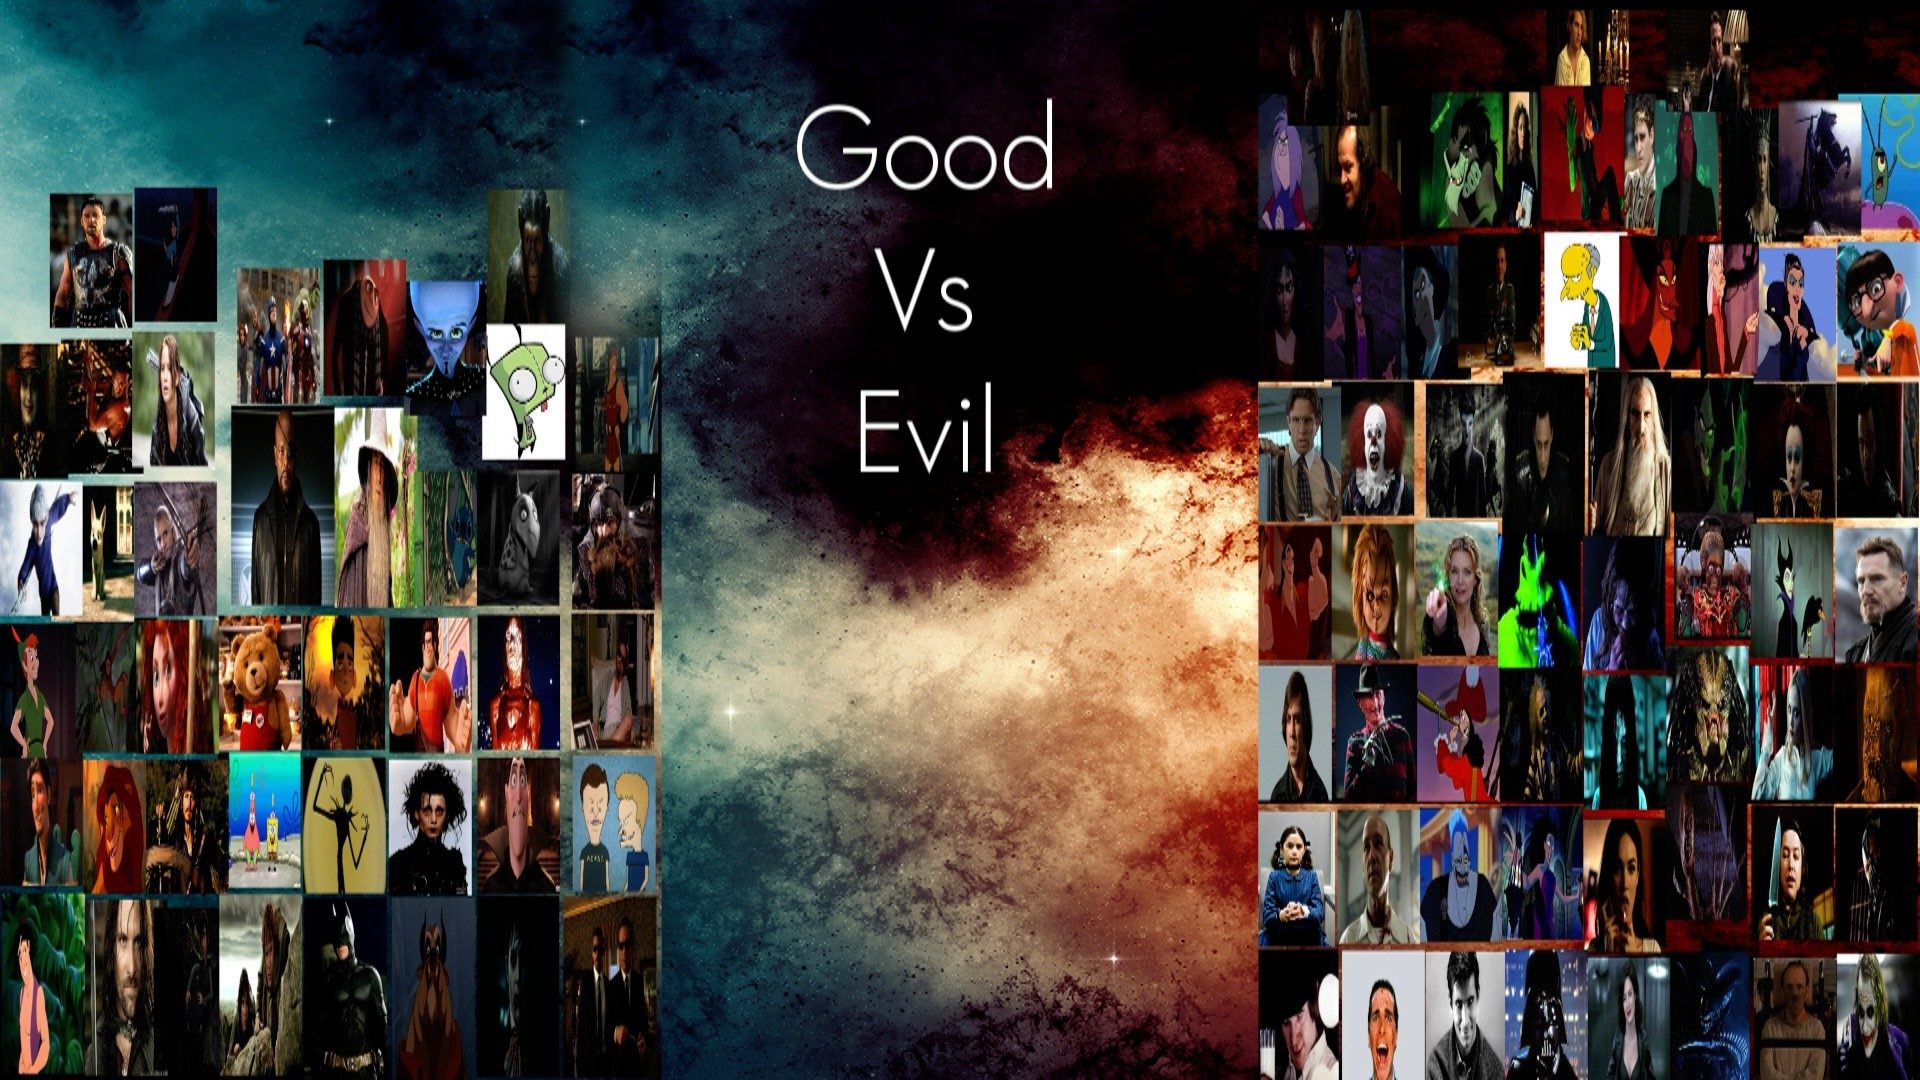 1920x1080 Good Vs Evil Meme by Normanjokerwise Good Vs Evil Meme by Normanjokerwise